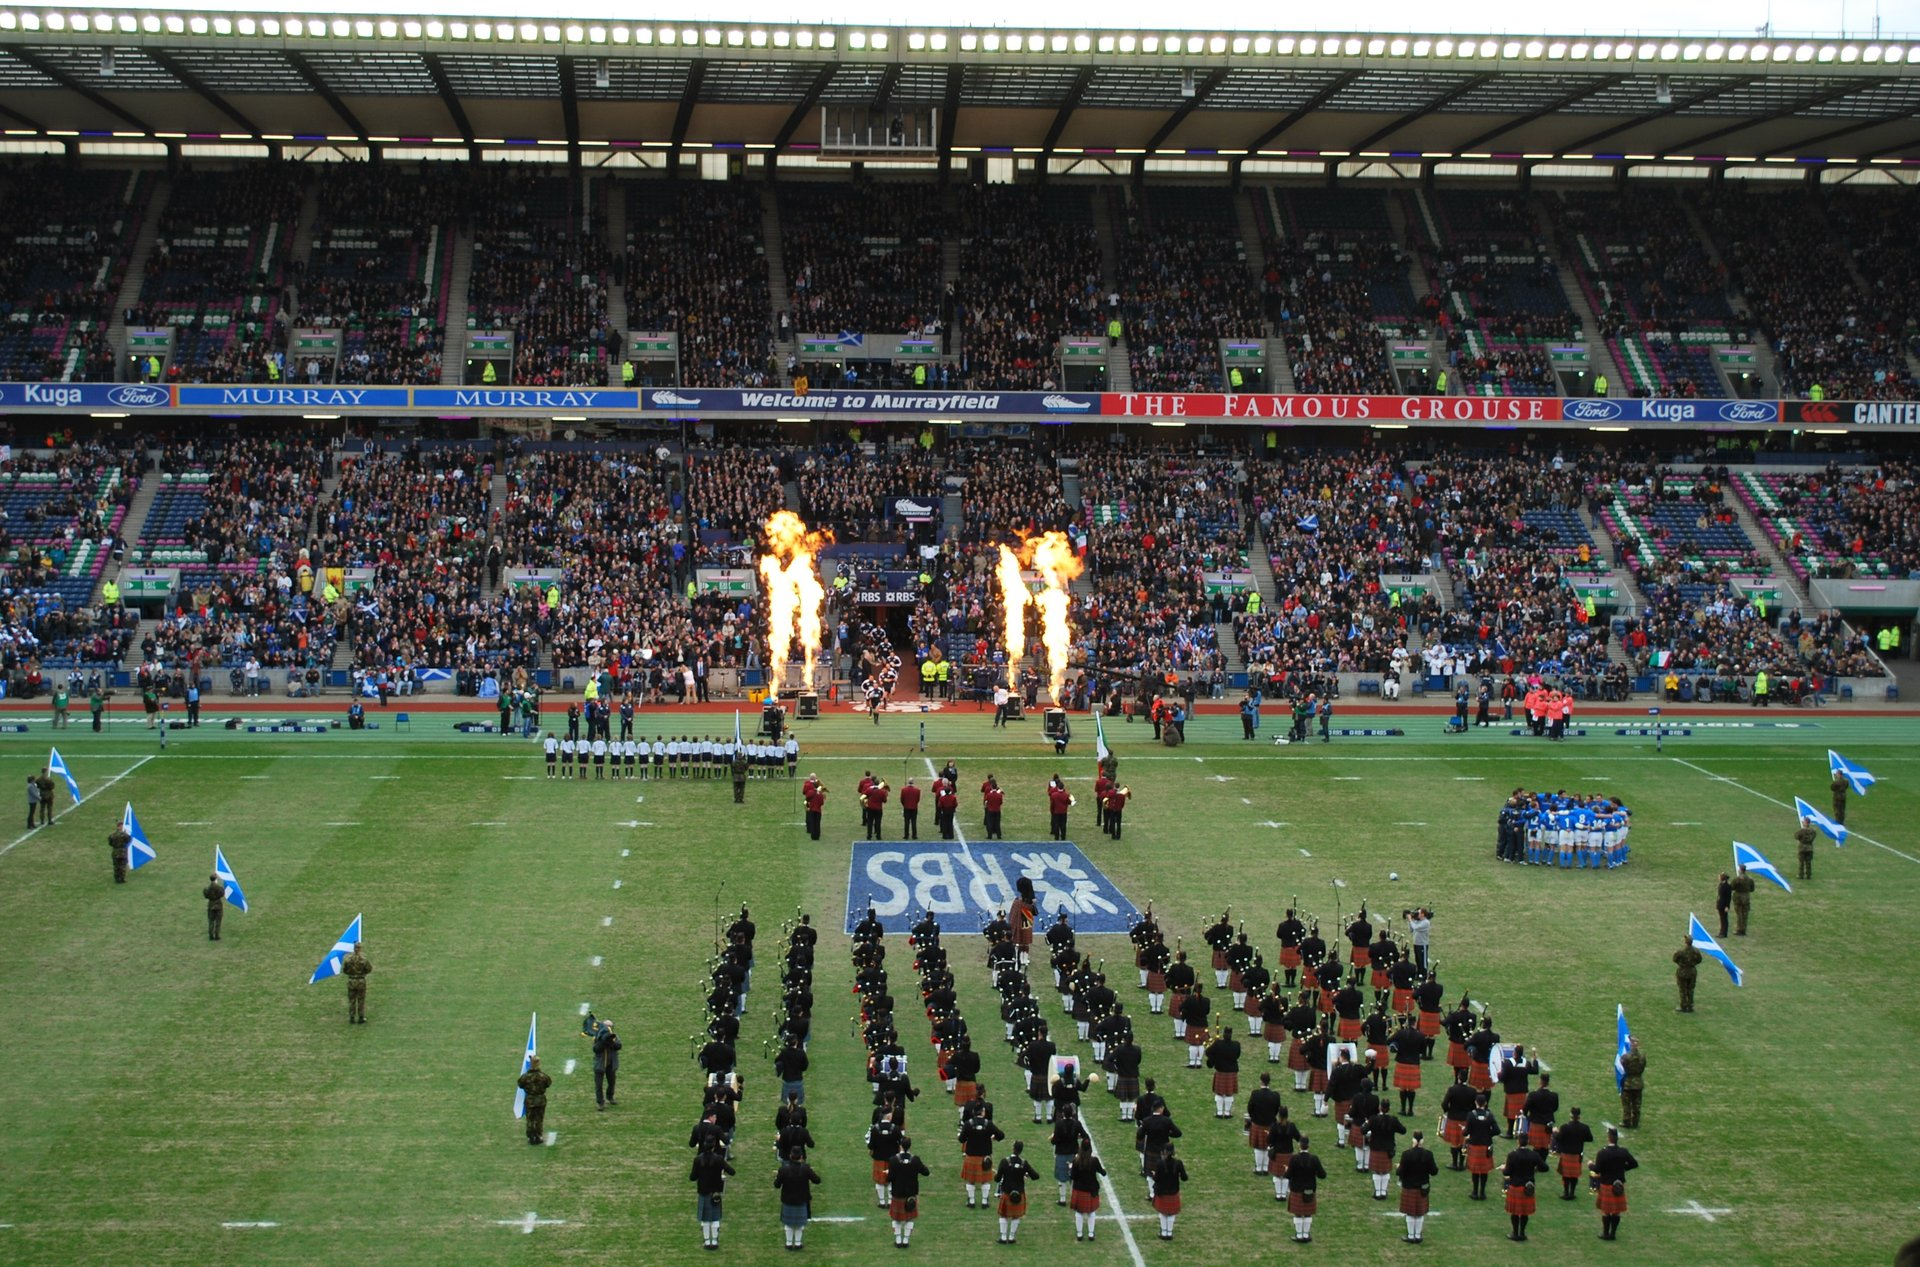 Rugby in Edinburgh: Six Nations Cup in Edinburgh - Best Season 2019